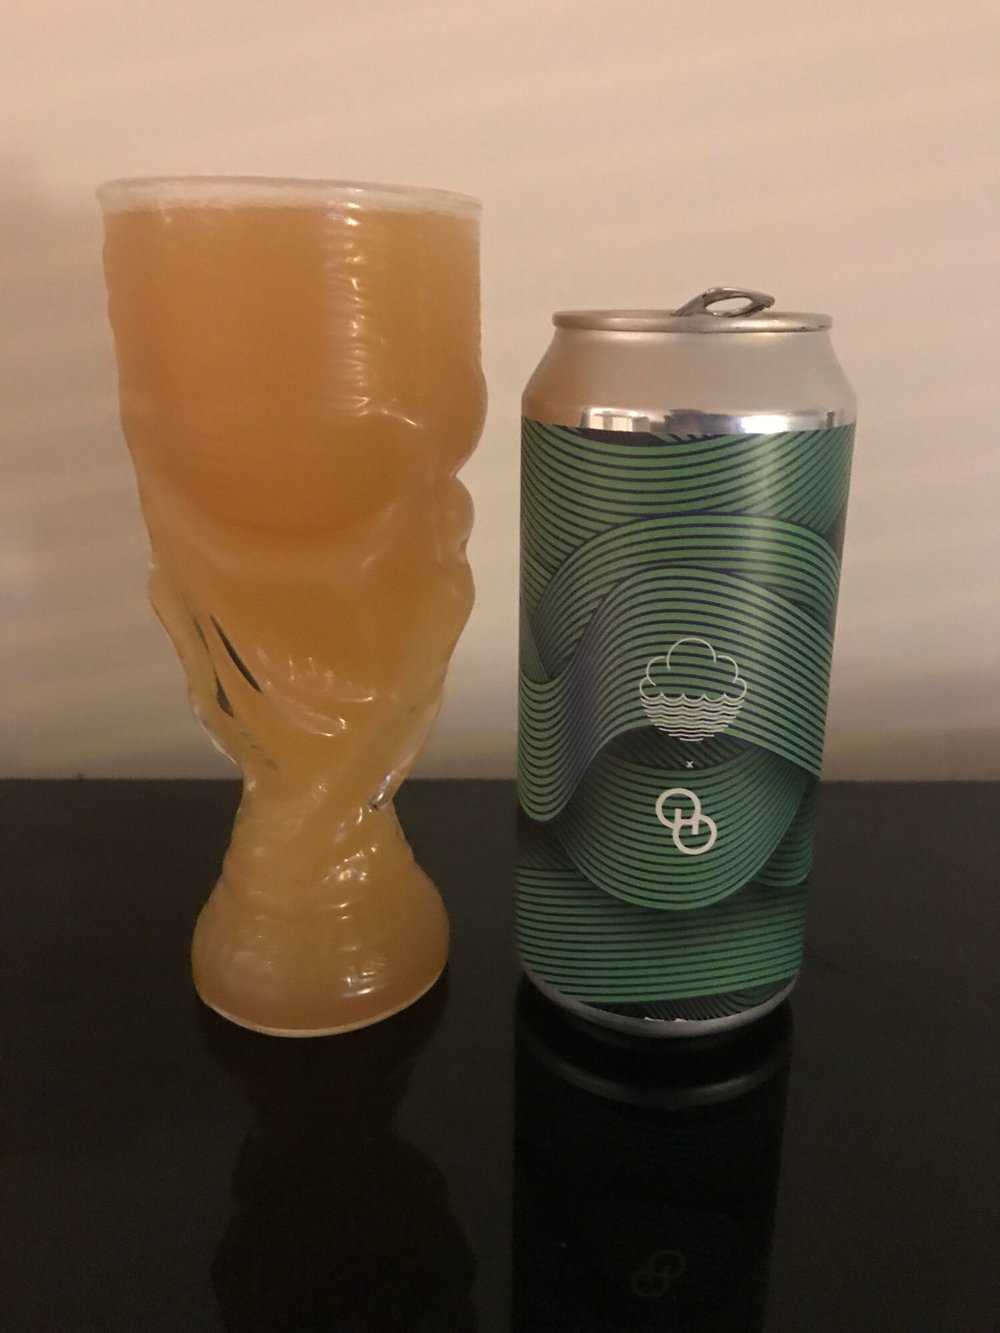 Tremendous Ideas - Double IPA 8% // Cloudwater Brew Co. x Other Half Brewing Company - Bang on the Hedges brand, comes this 8% DIPA collaboration with New York brewery, Other Half (who brewed several collaborations with several UK breweries during their trip over from the US for Hop City Leeds).If you've read anything I've written on this ol' blog in the past, it's pretty obvious by now this beer was always going to be my thang - the UK kings of this style of beer collaborating with one of the US kings of the style? Go figure. 50% oats were used in the grist for this which made it super viscous for dat murk and was very thick for dat mouthfeel.This was super fresh and juicy. I had two cans, one not long after they went on sale and one about a month later - it definitely improved once the slight burn from the super fresh hops had settled down.